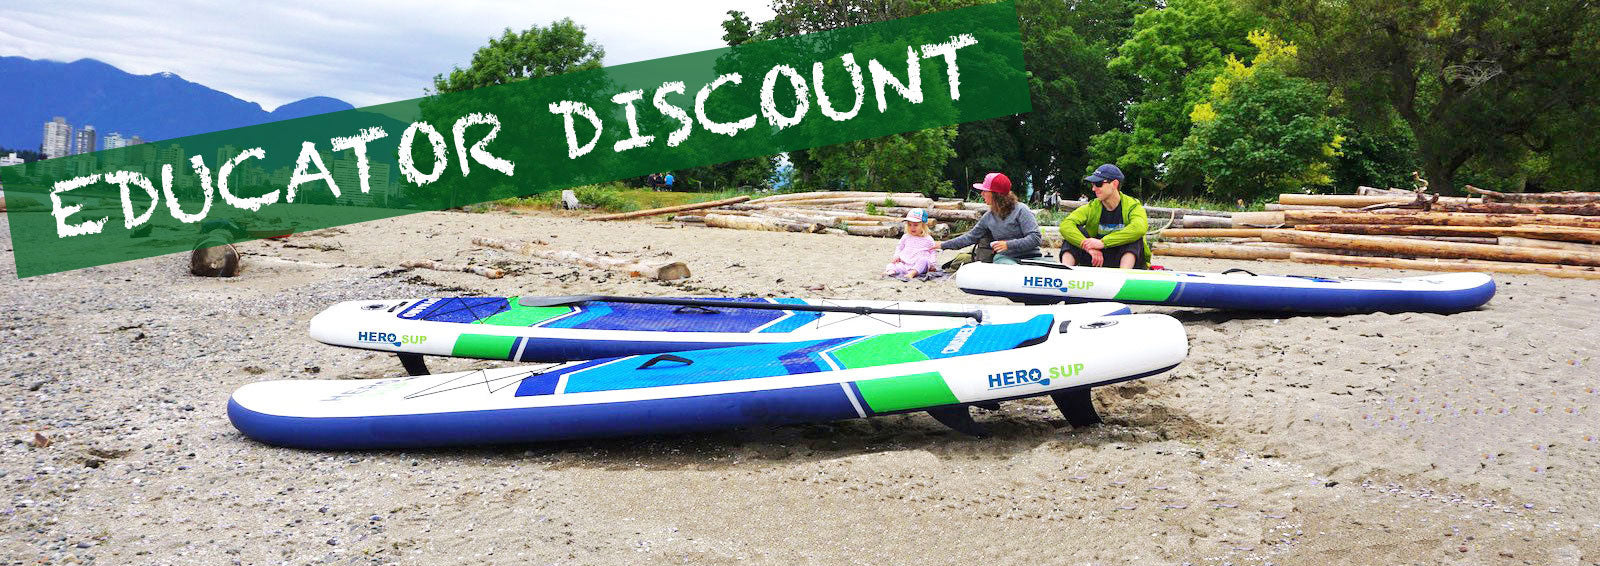 Hero SUP Educator Discount